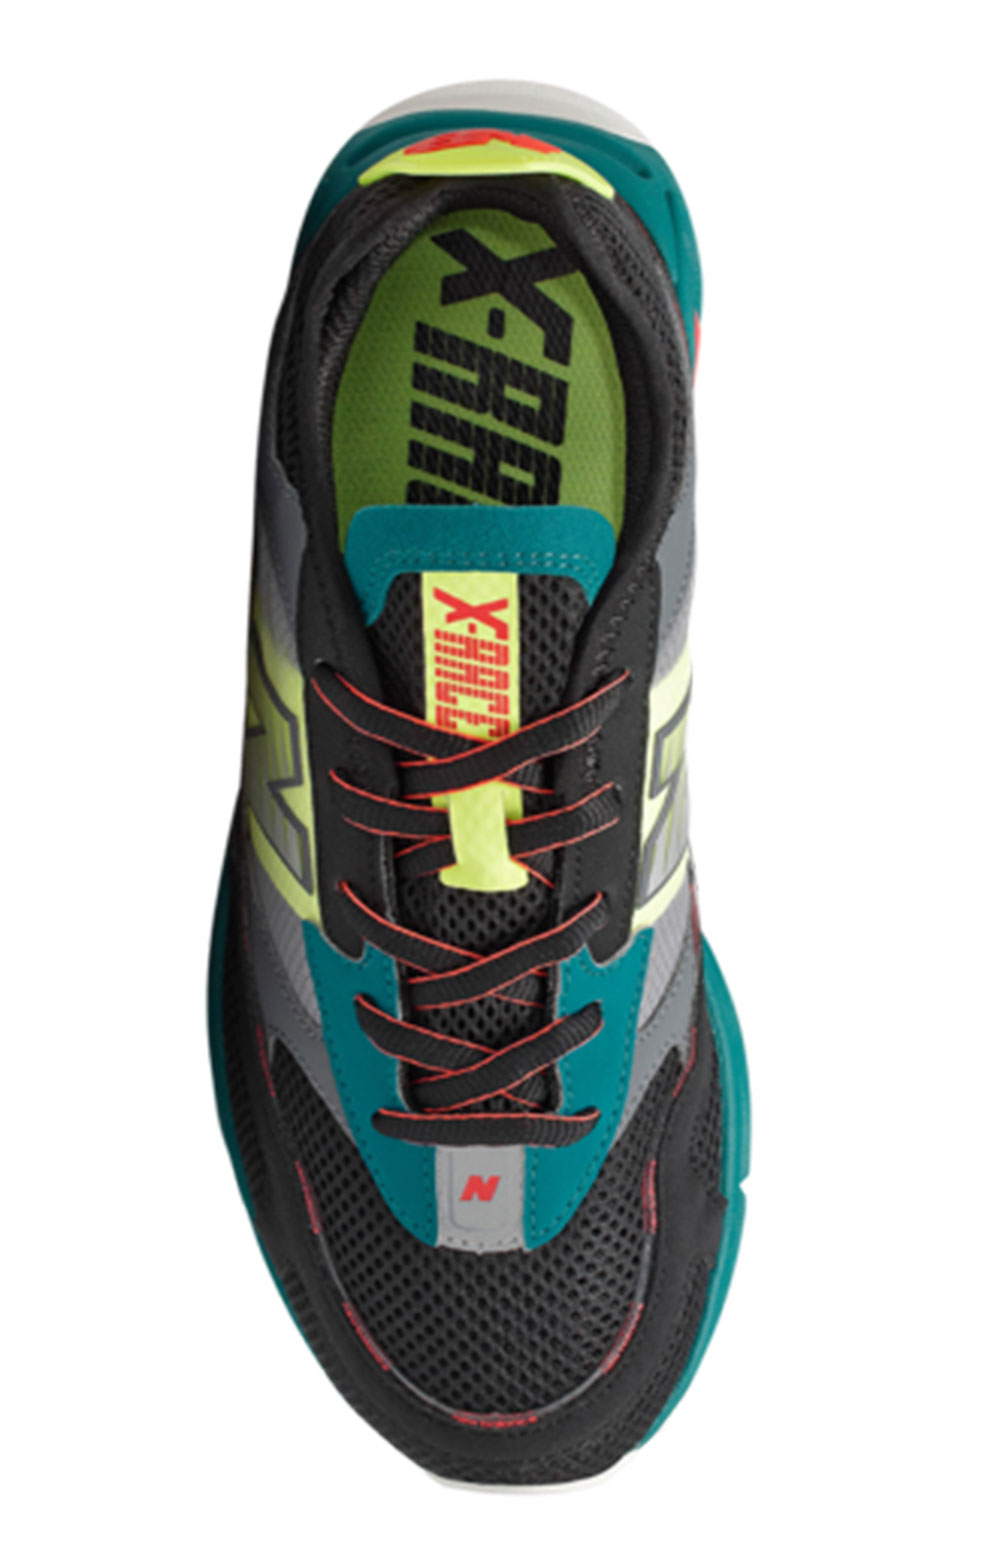 (MSXRCHNP) X-Racer Shoes - Teal/Black/Yellow 3